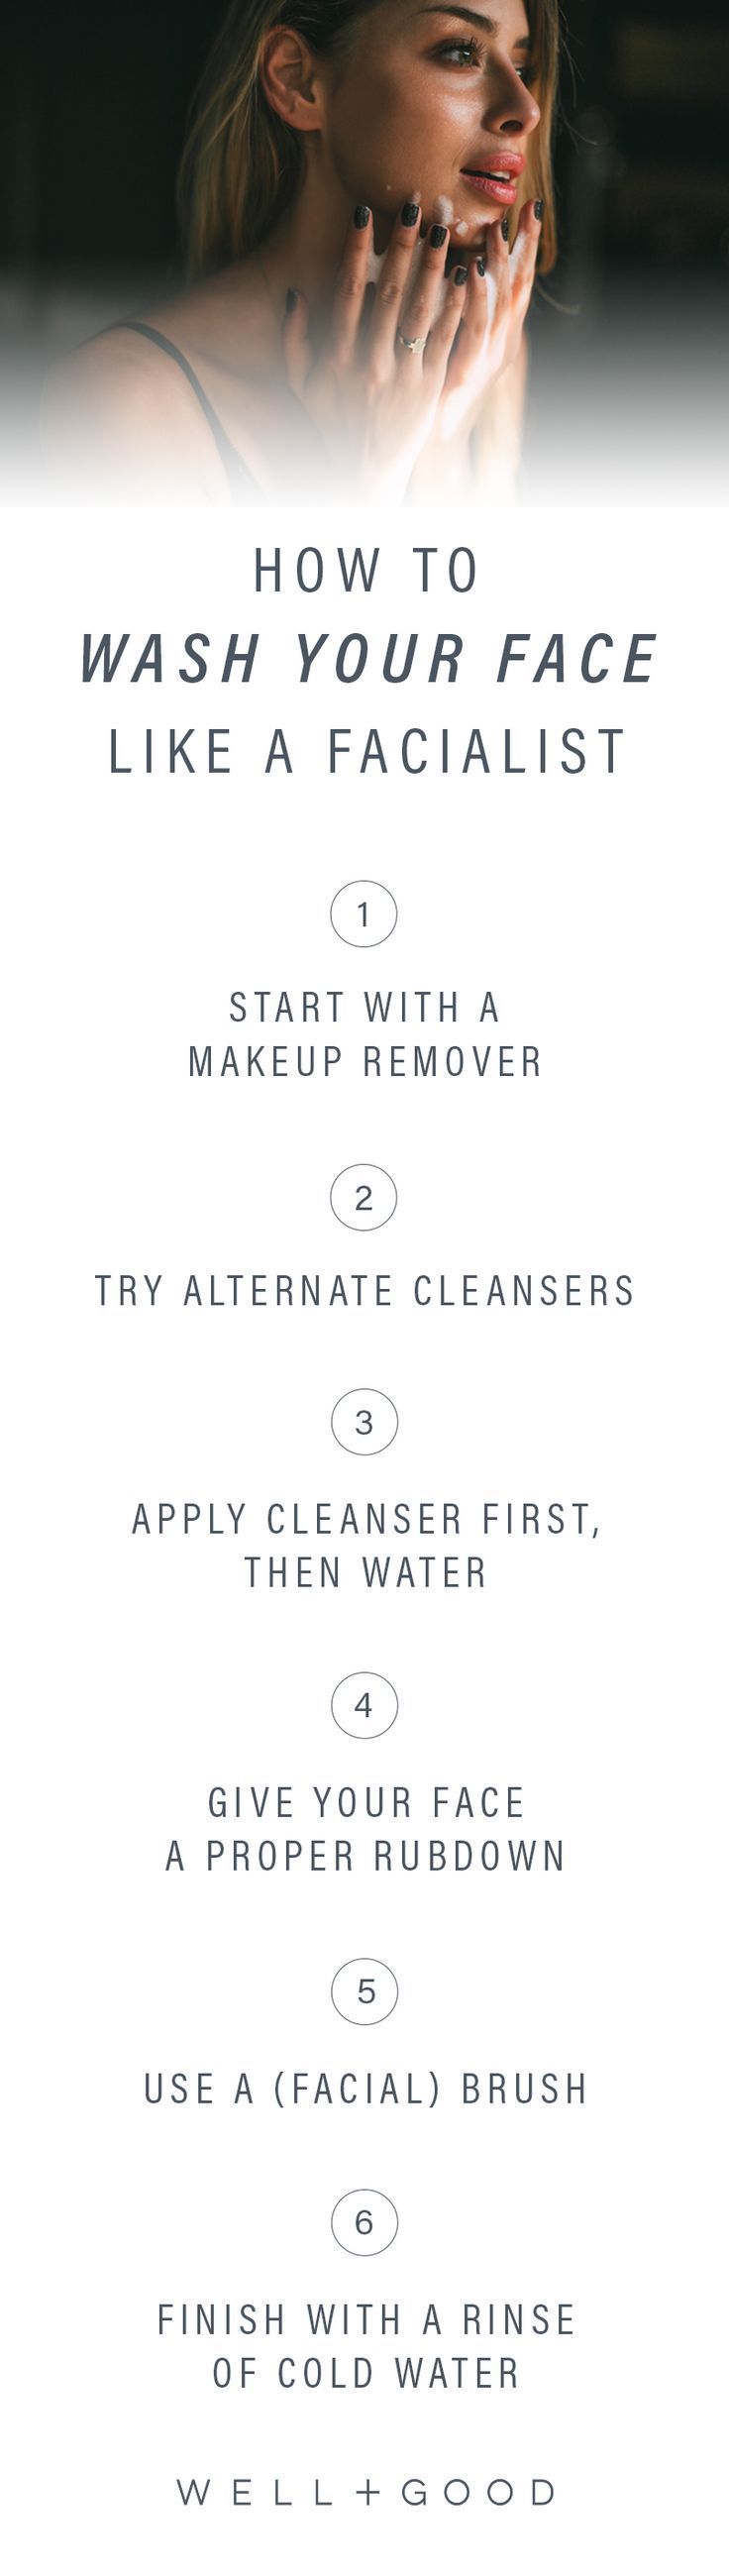 Tips for washing your face like a facialist